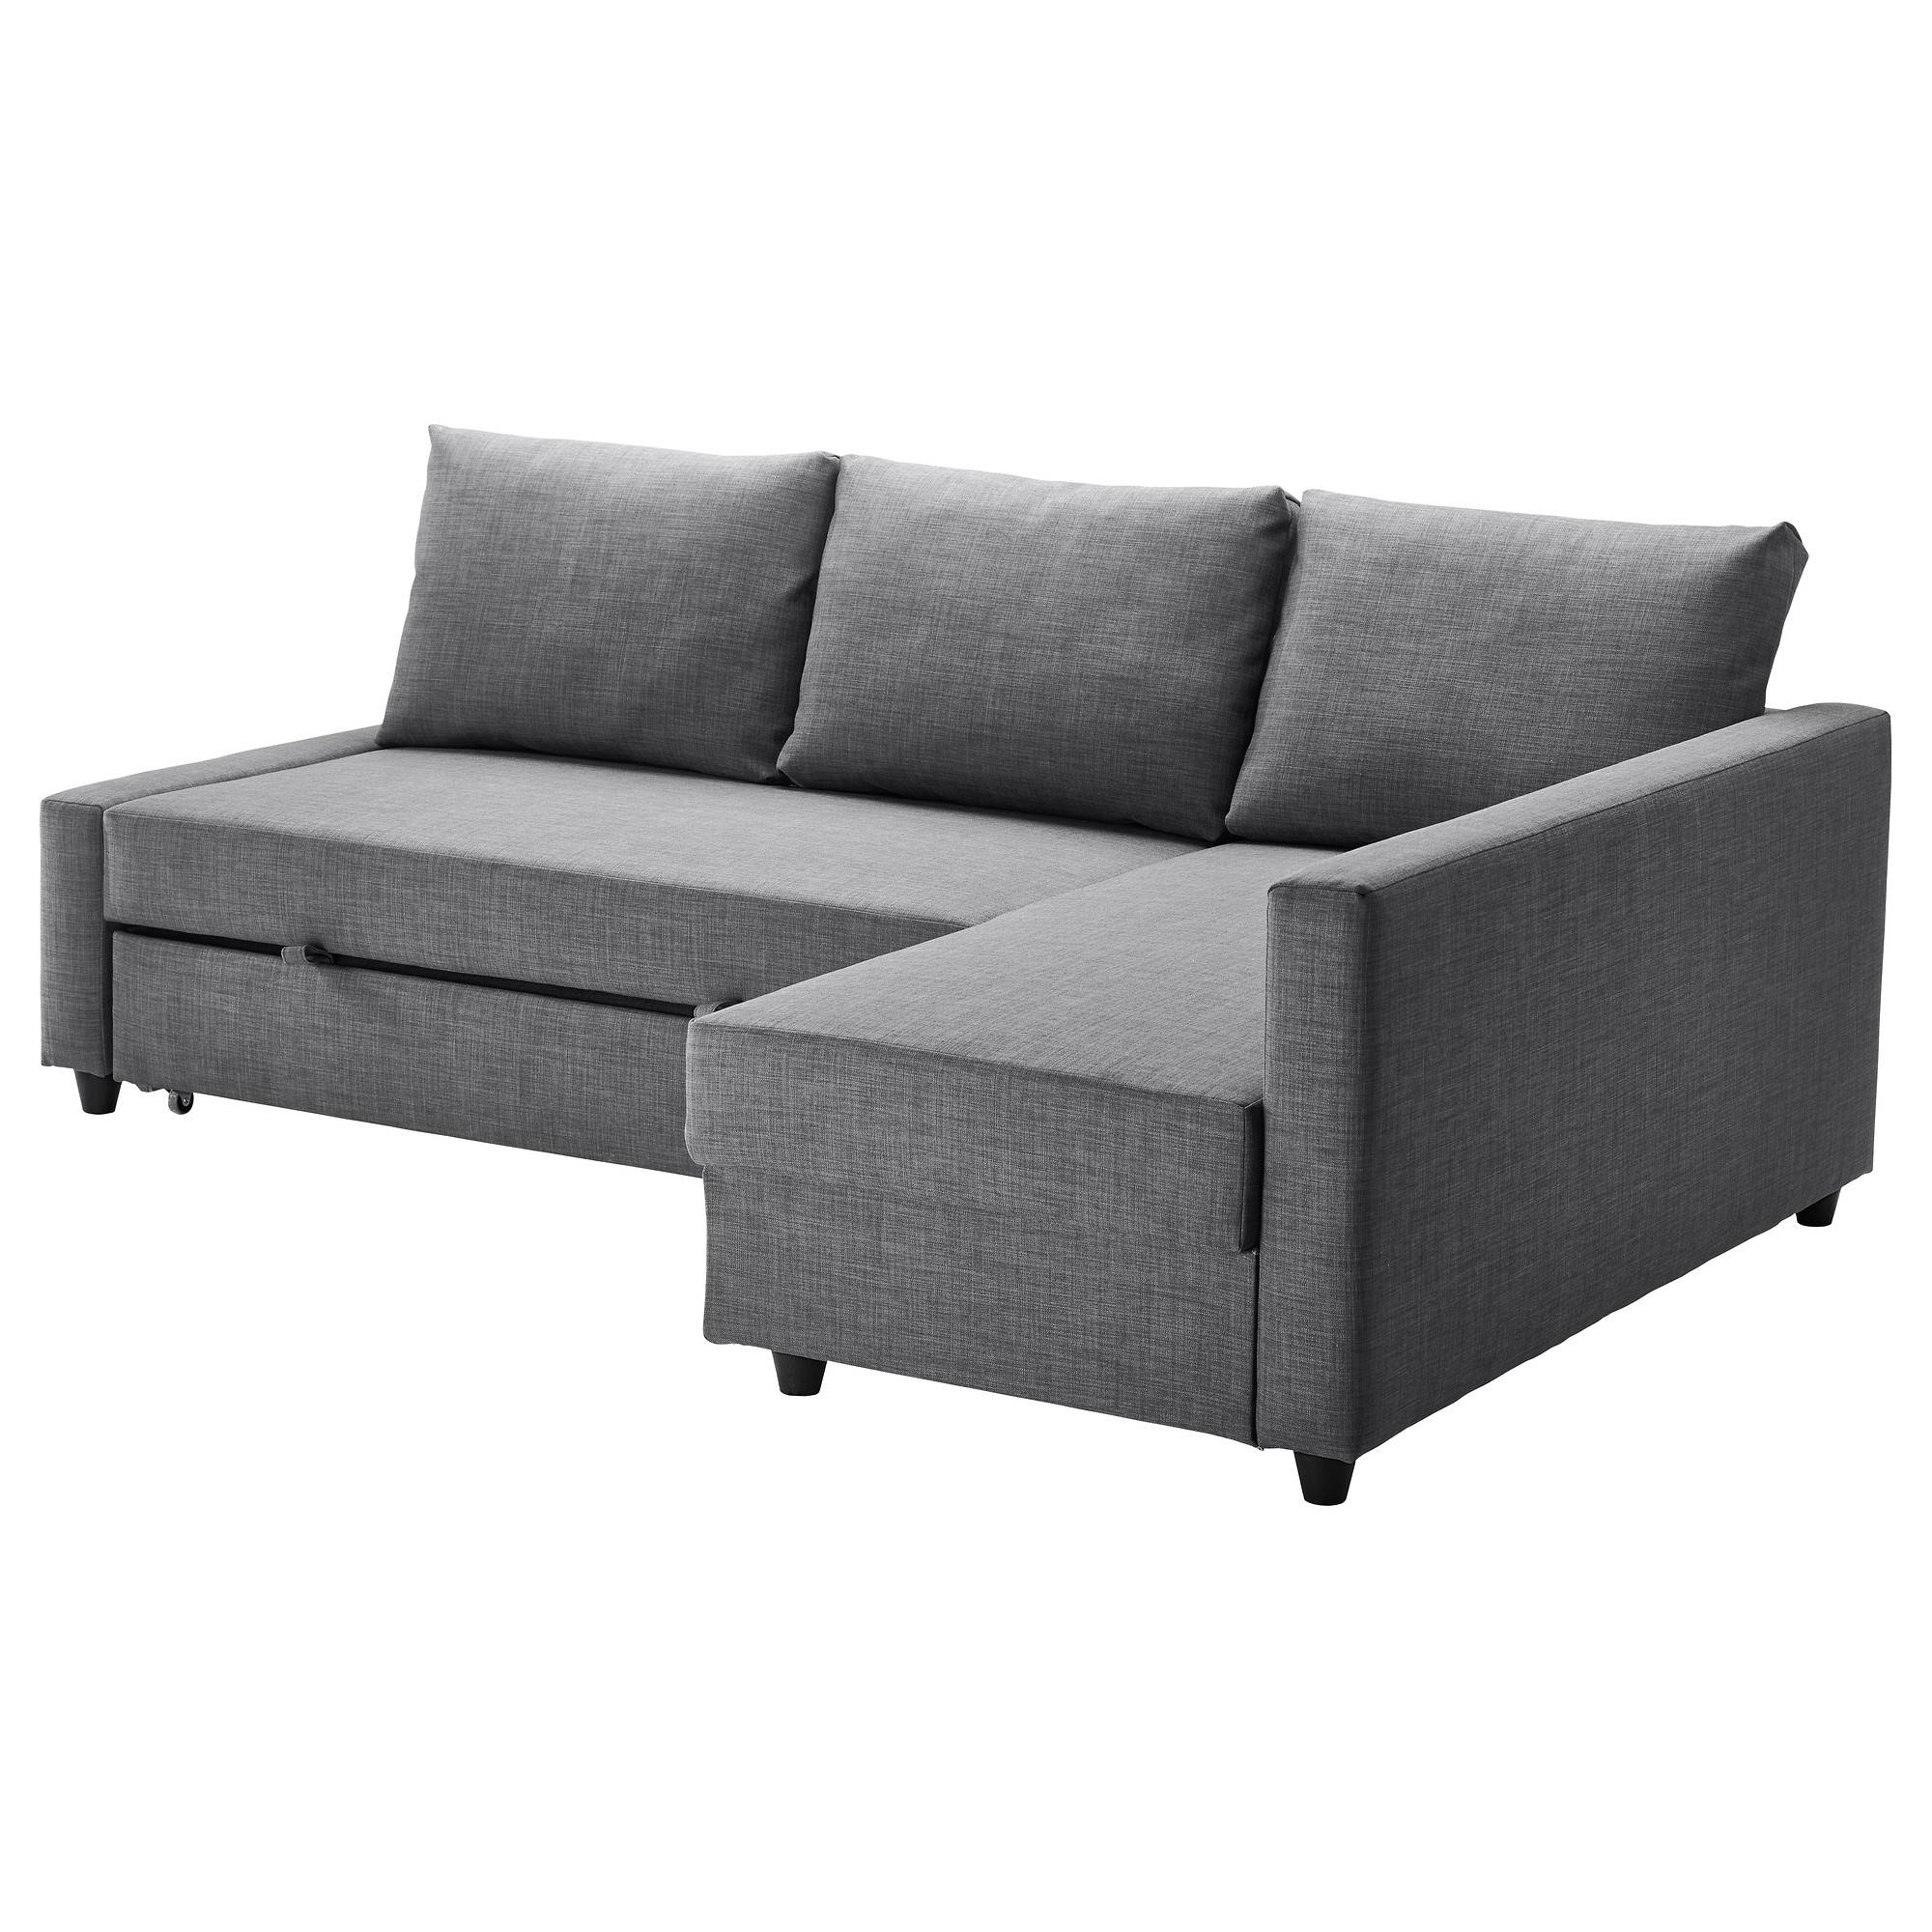 Sleeper-Sofas & Chair Beds - Ikea for Manstad Sofa Bed With Storage From Ikea (Image 18 of 25)